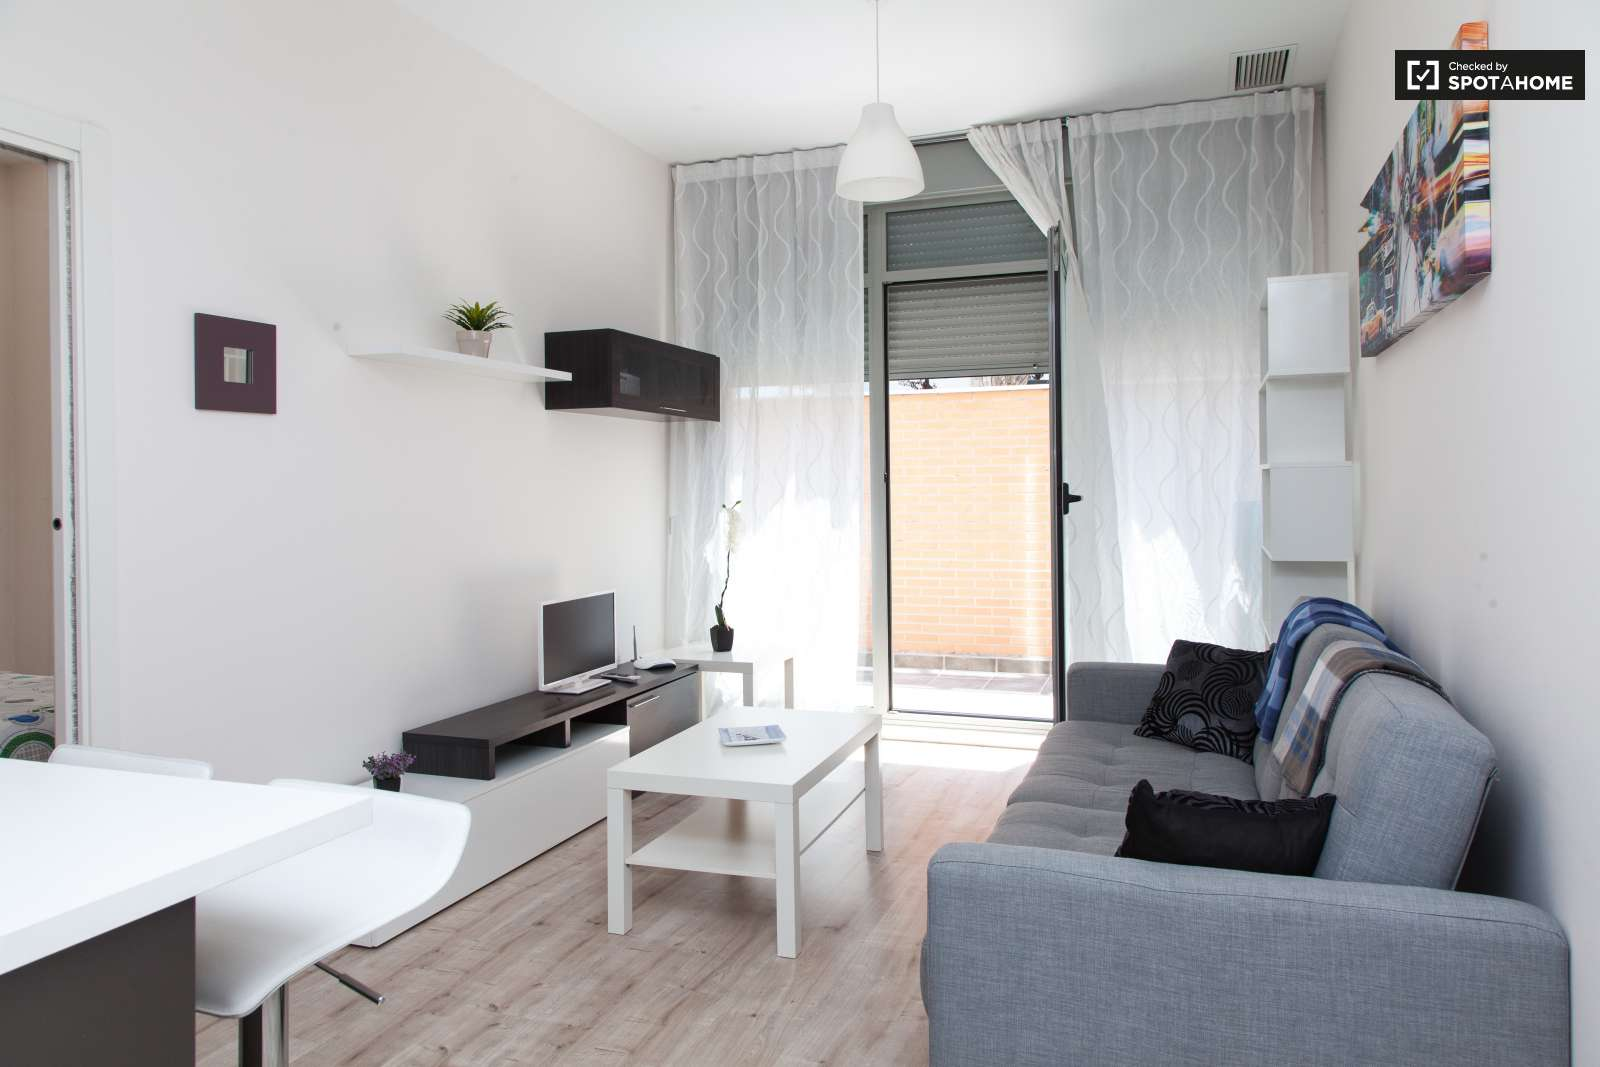 1-bedroom apartment for rent in Ciudad Lineal, Madrid (ref: 129628 ...